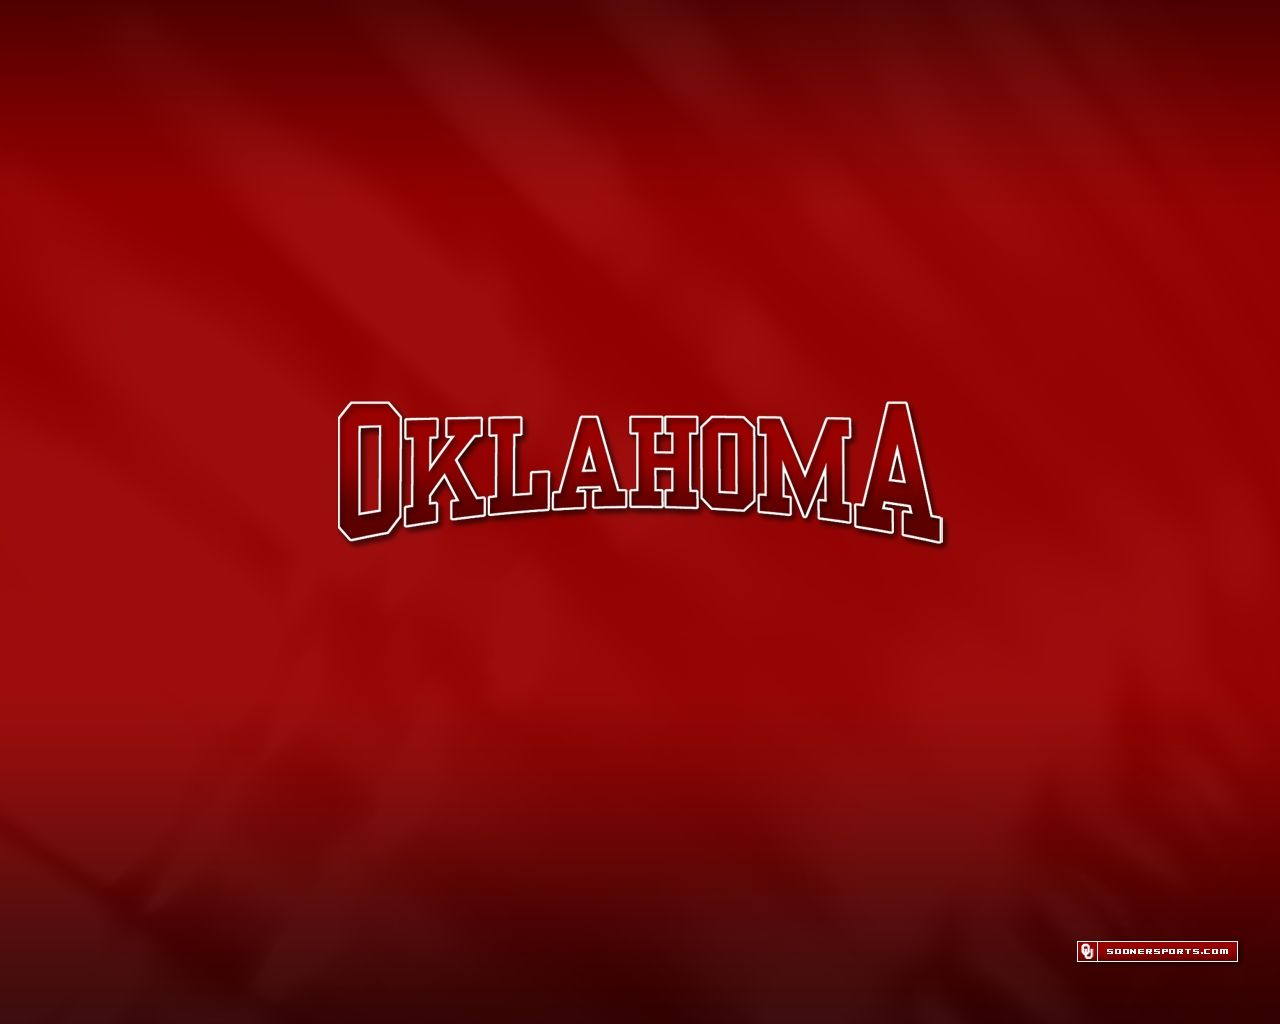 Oklahoma Sooners Wallpaper 25106 Wallpapers HD colourinwallpaper 1280x1024